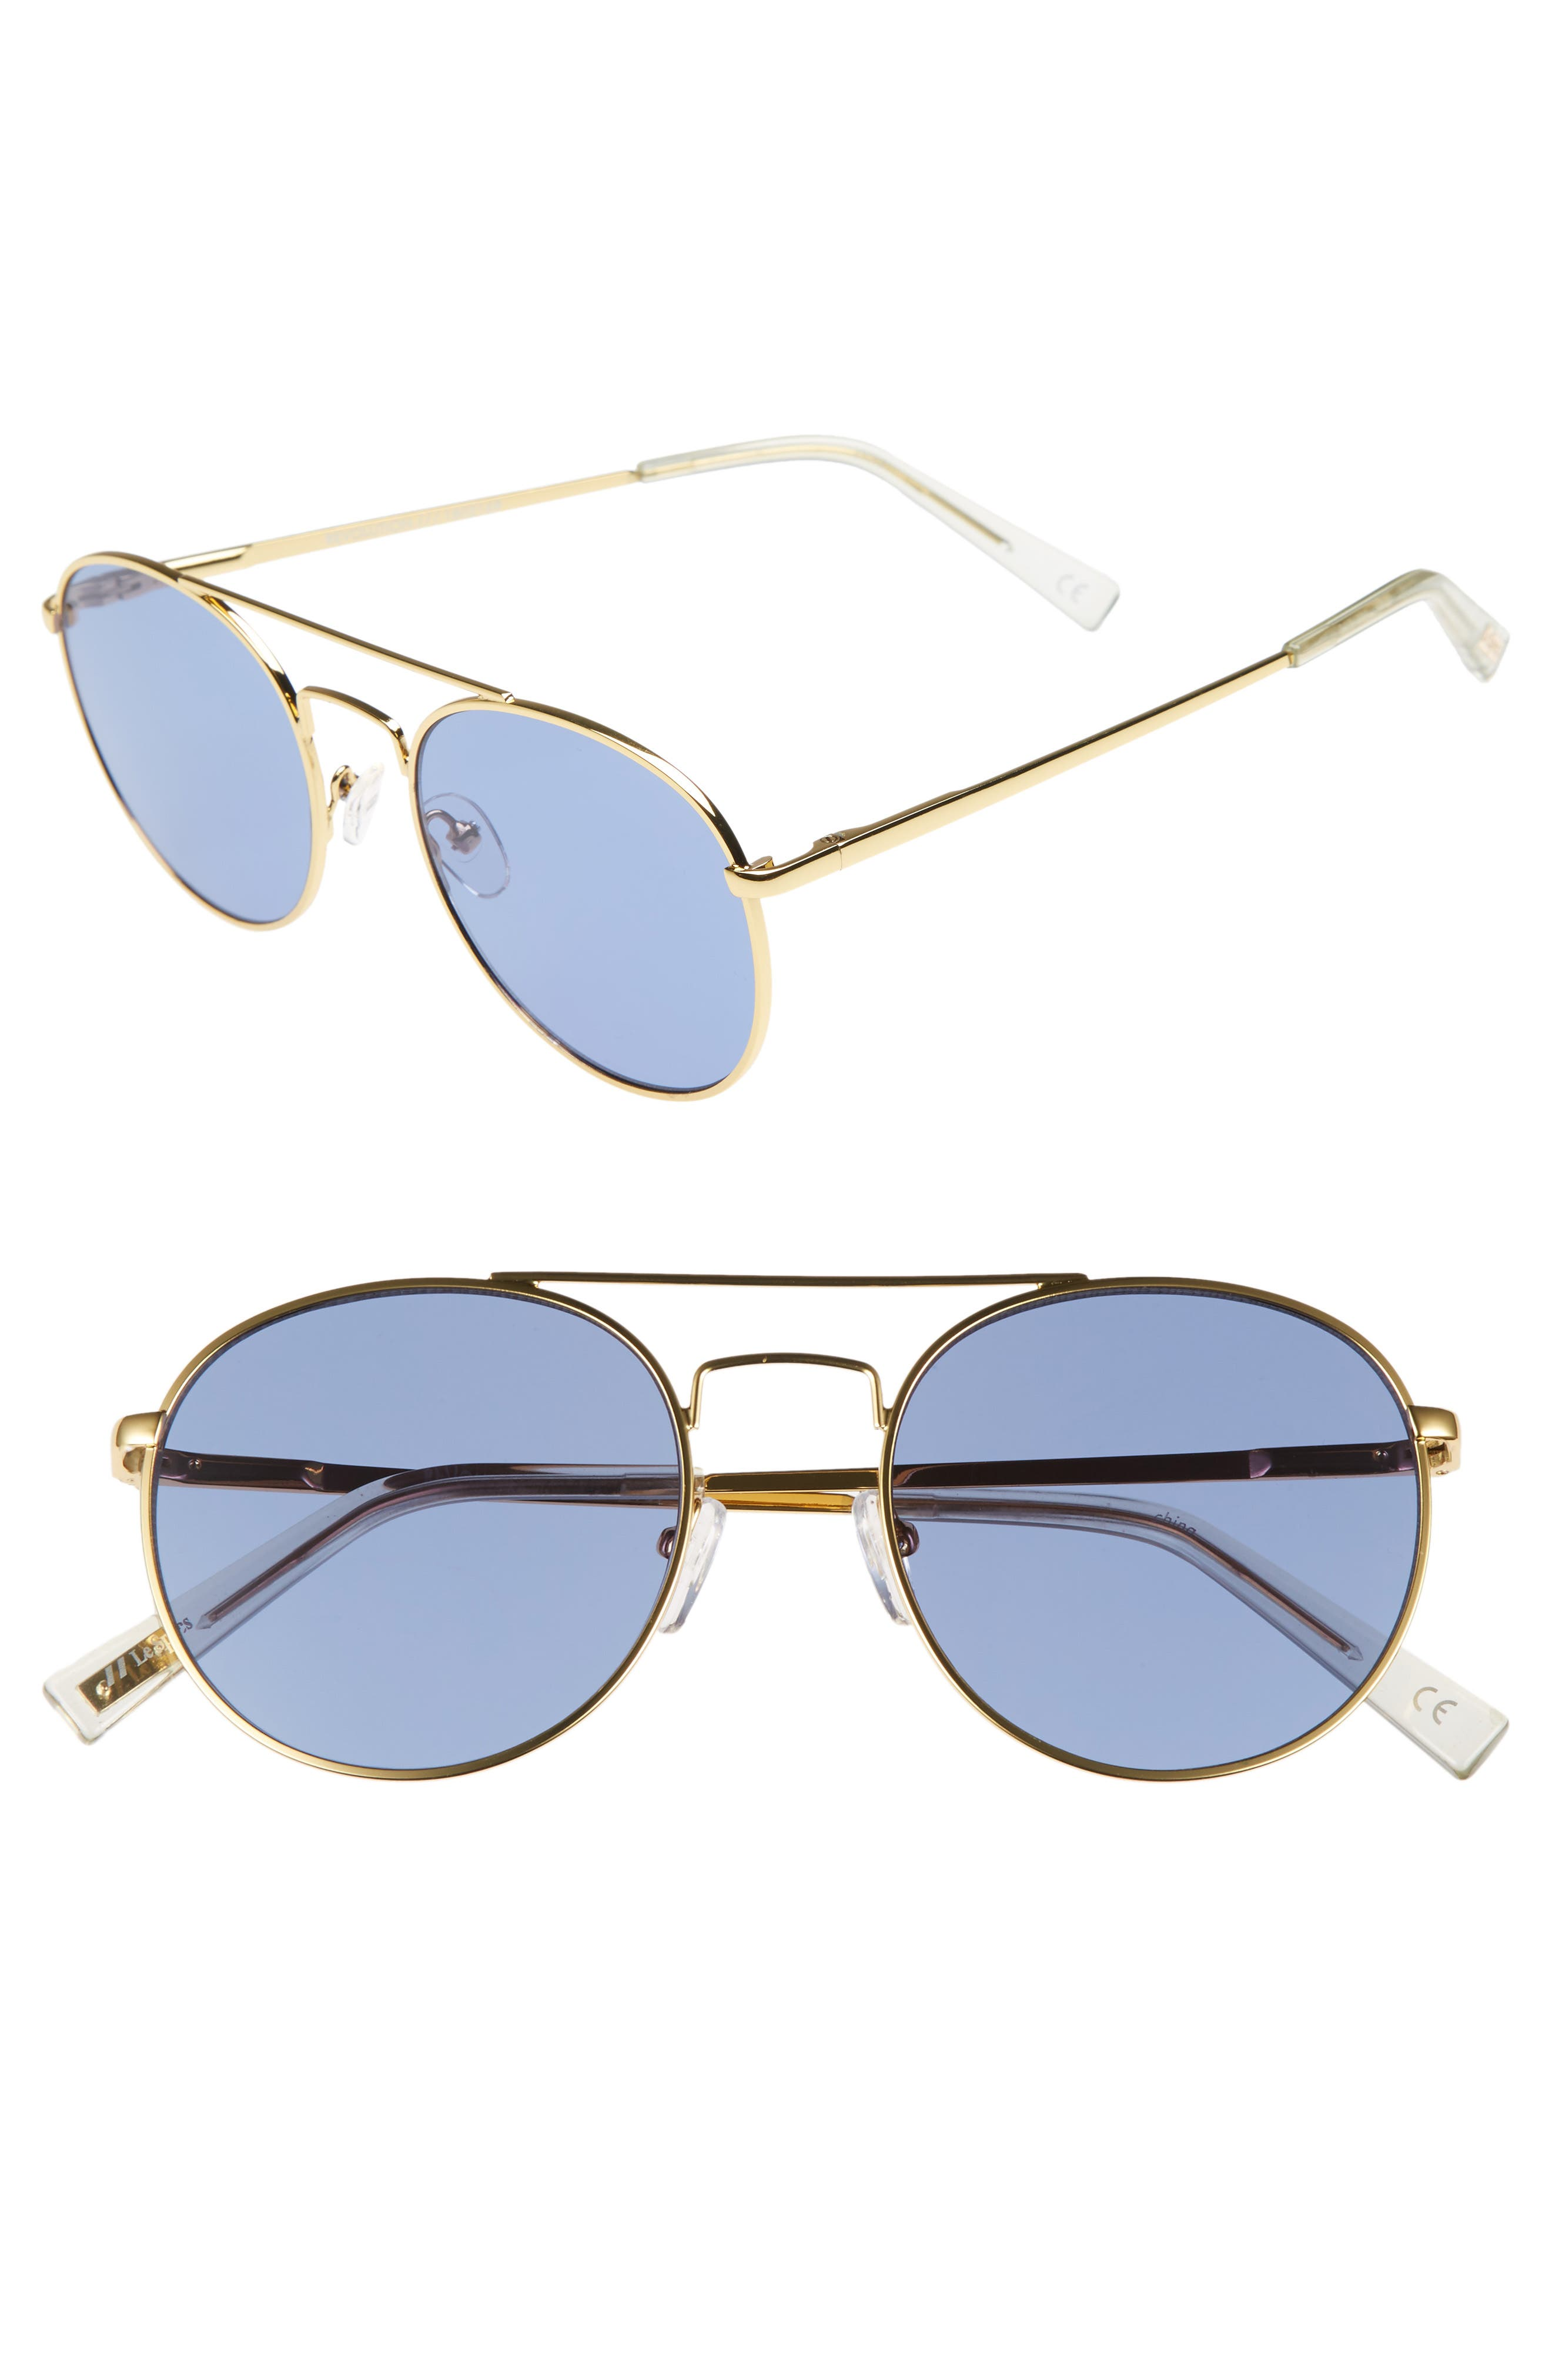 Revolution 53mm Aviator Sunglasses,                         Main,                         color, Bright Gold